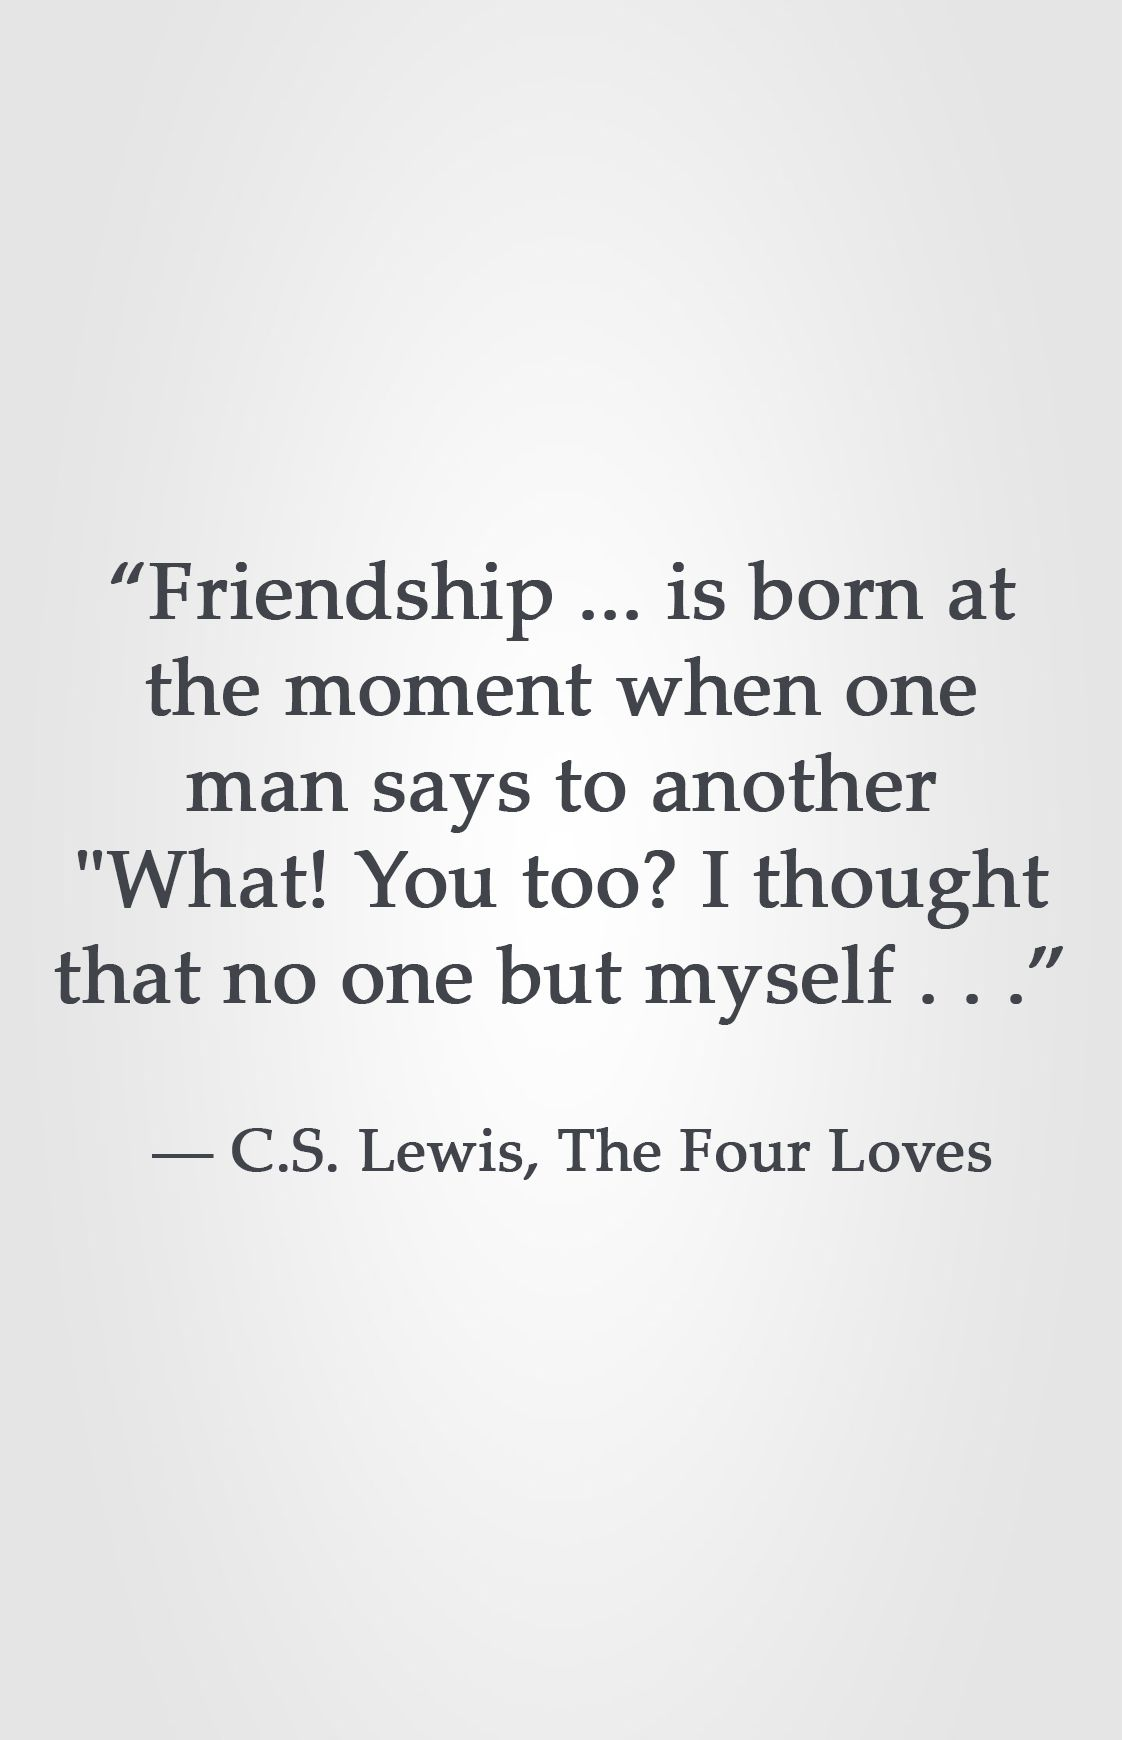 Cs Lewis Quote About Friendship Friendship.is Born At The Moment When One Man Says To Another